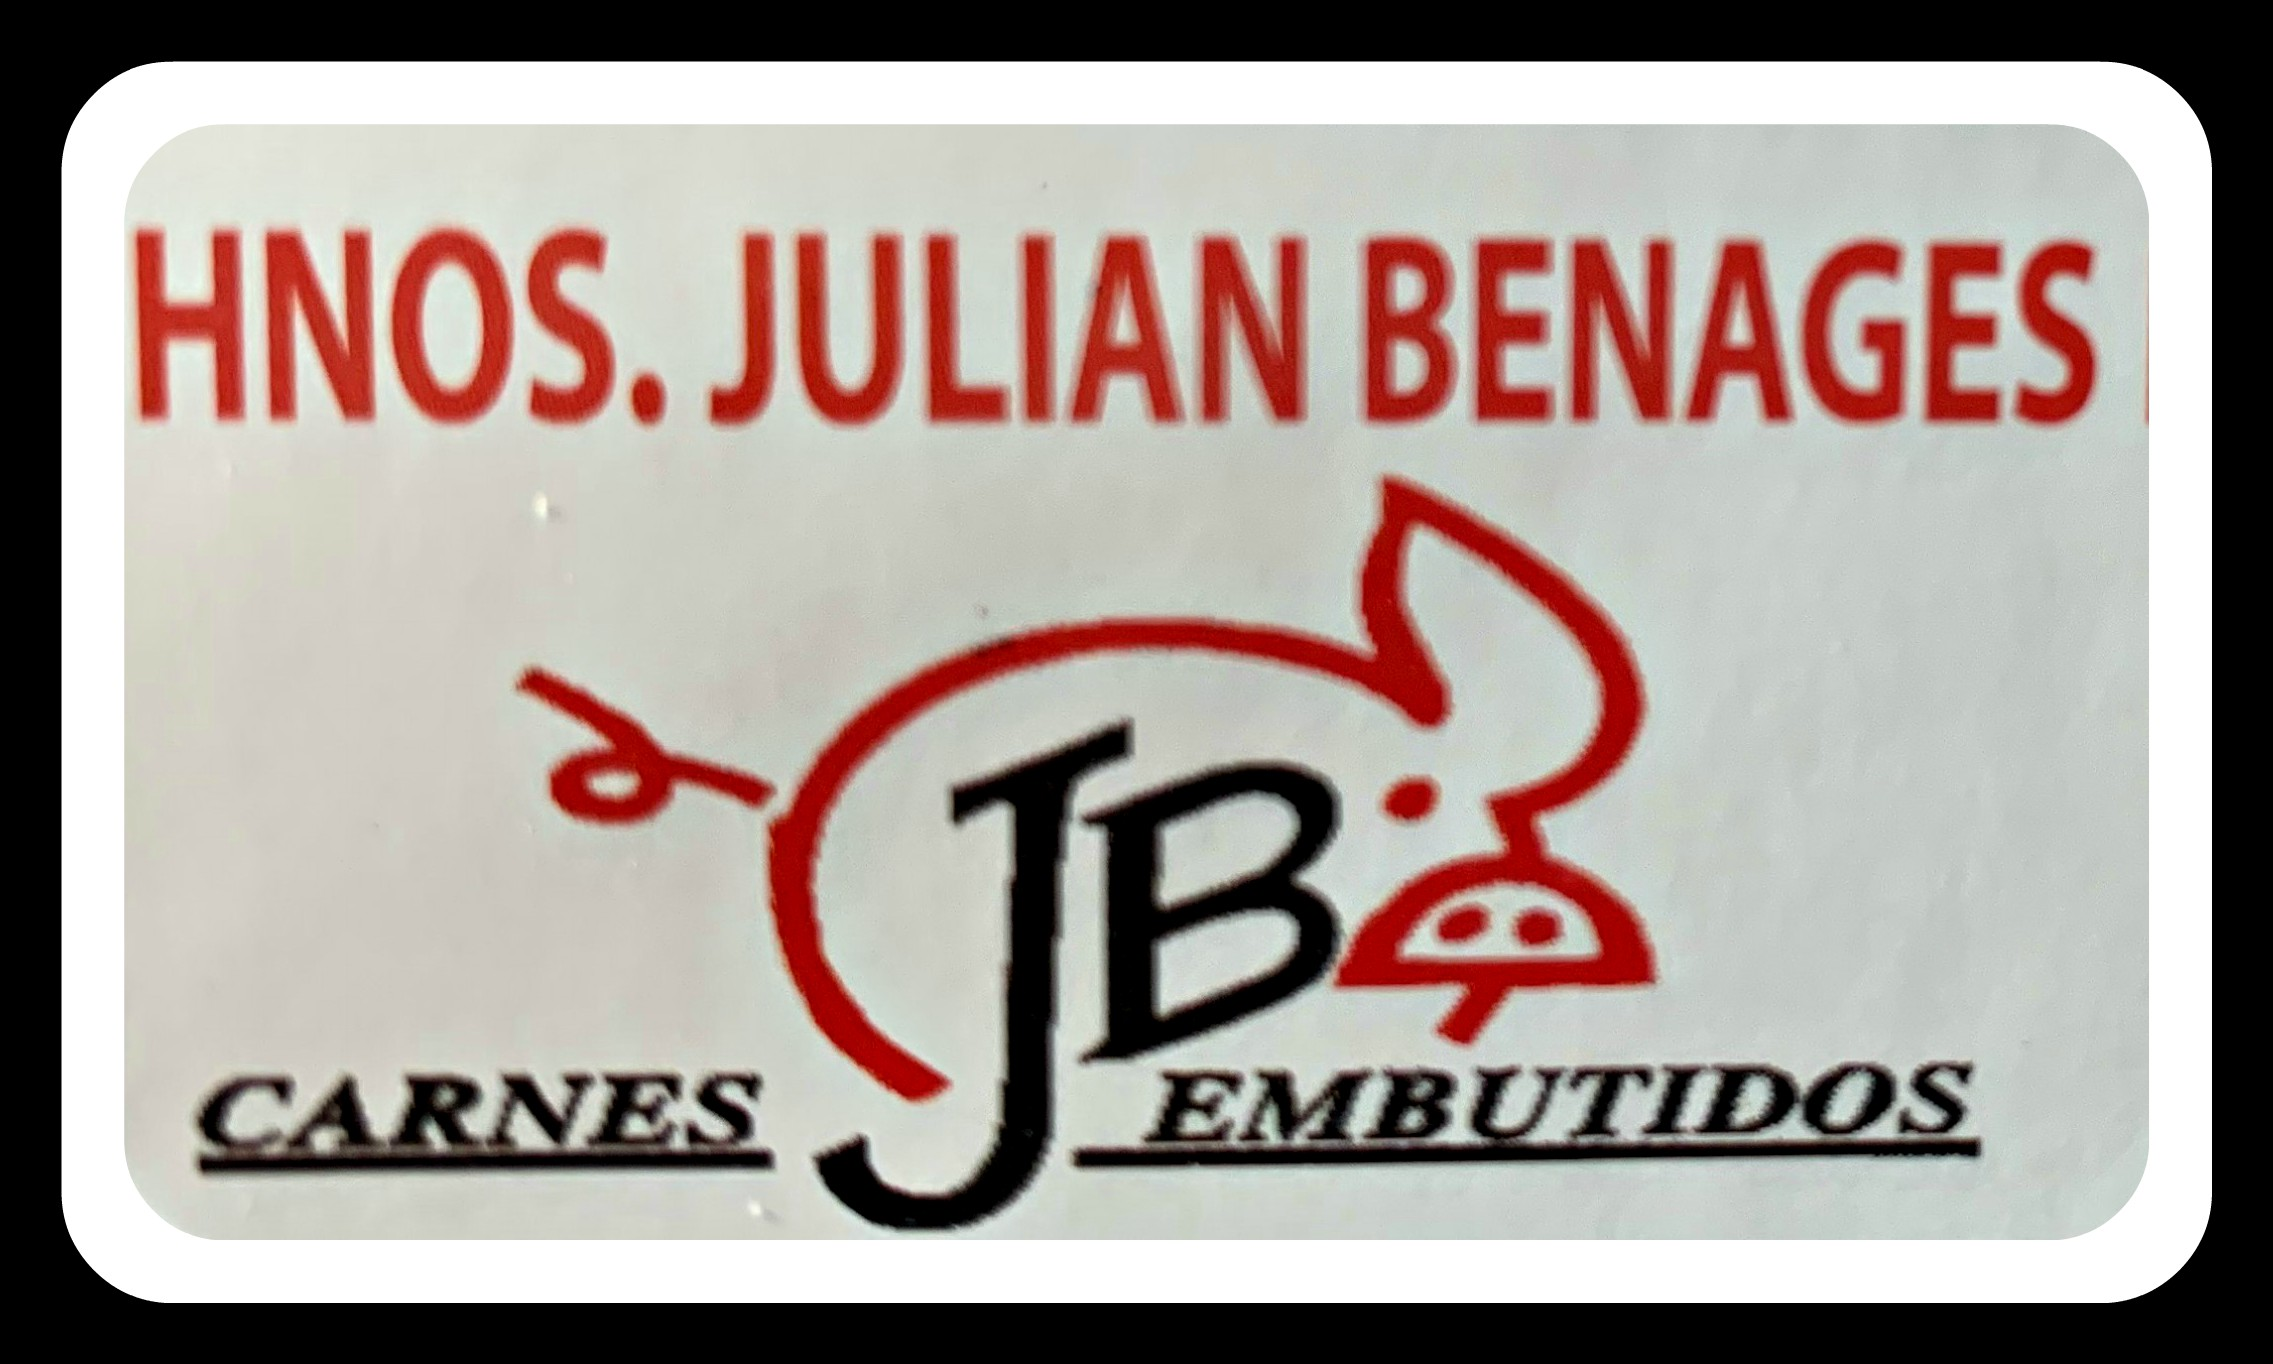 Carnicería Hermanos Julián Benages S.L